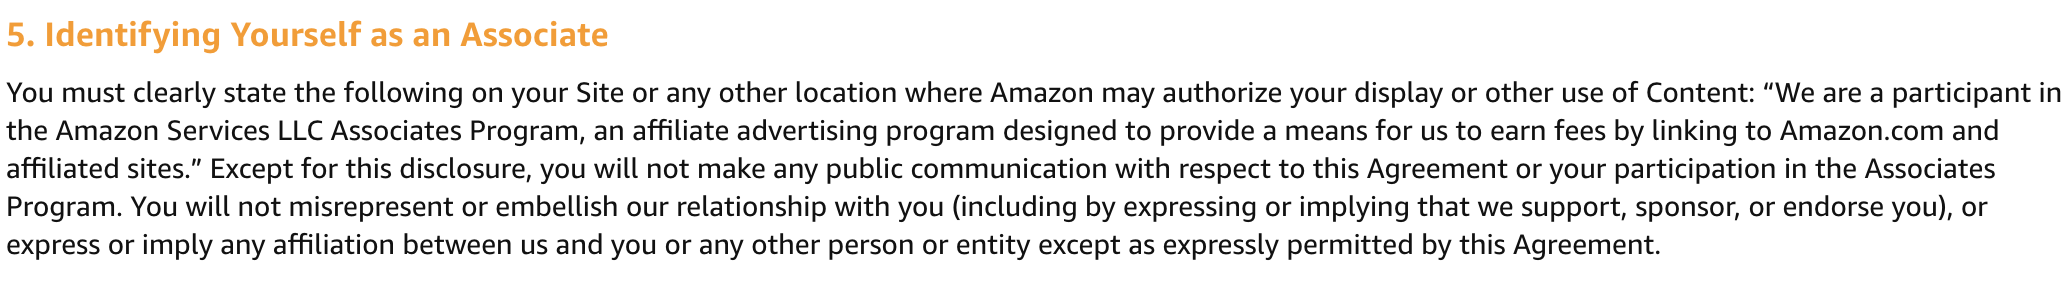 Amazon Associates disclosure requirement